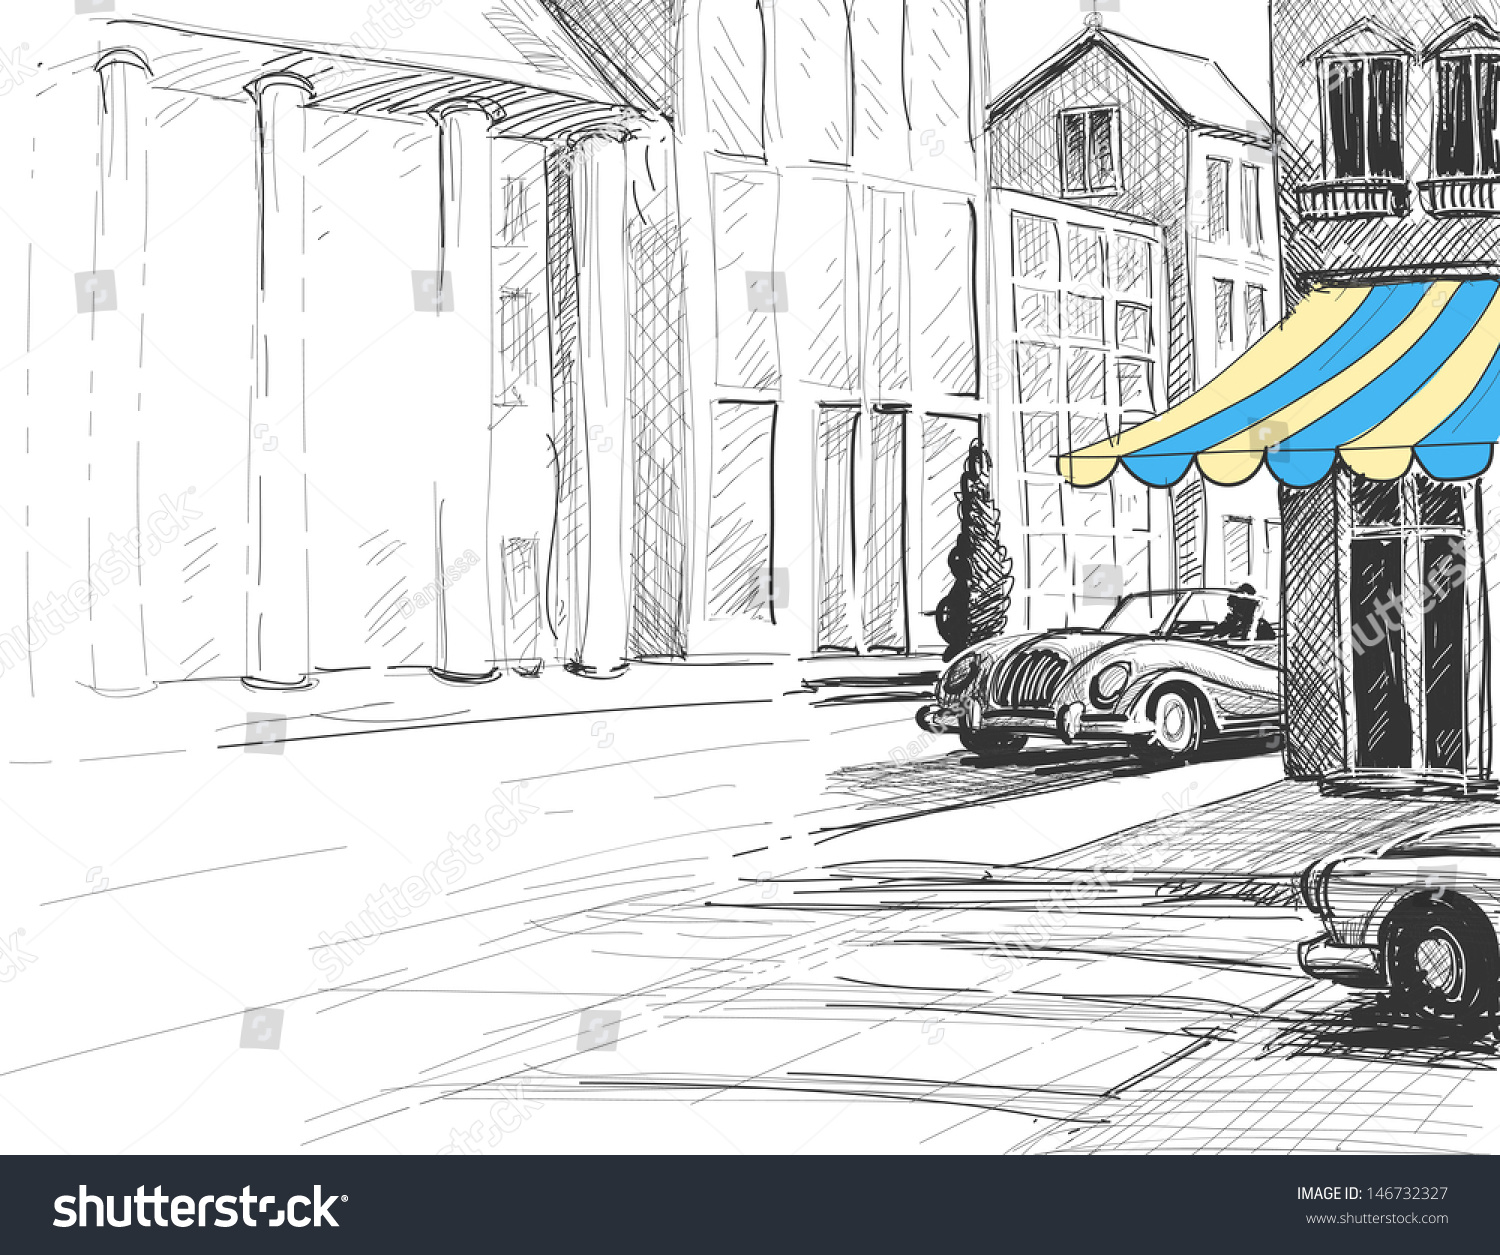 Architecture Drawing Cars interesting architecture drawing cars urban street and stock